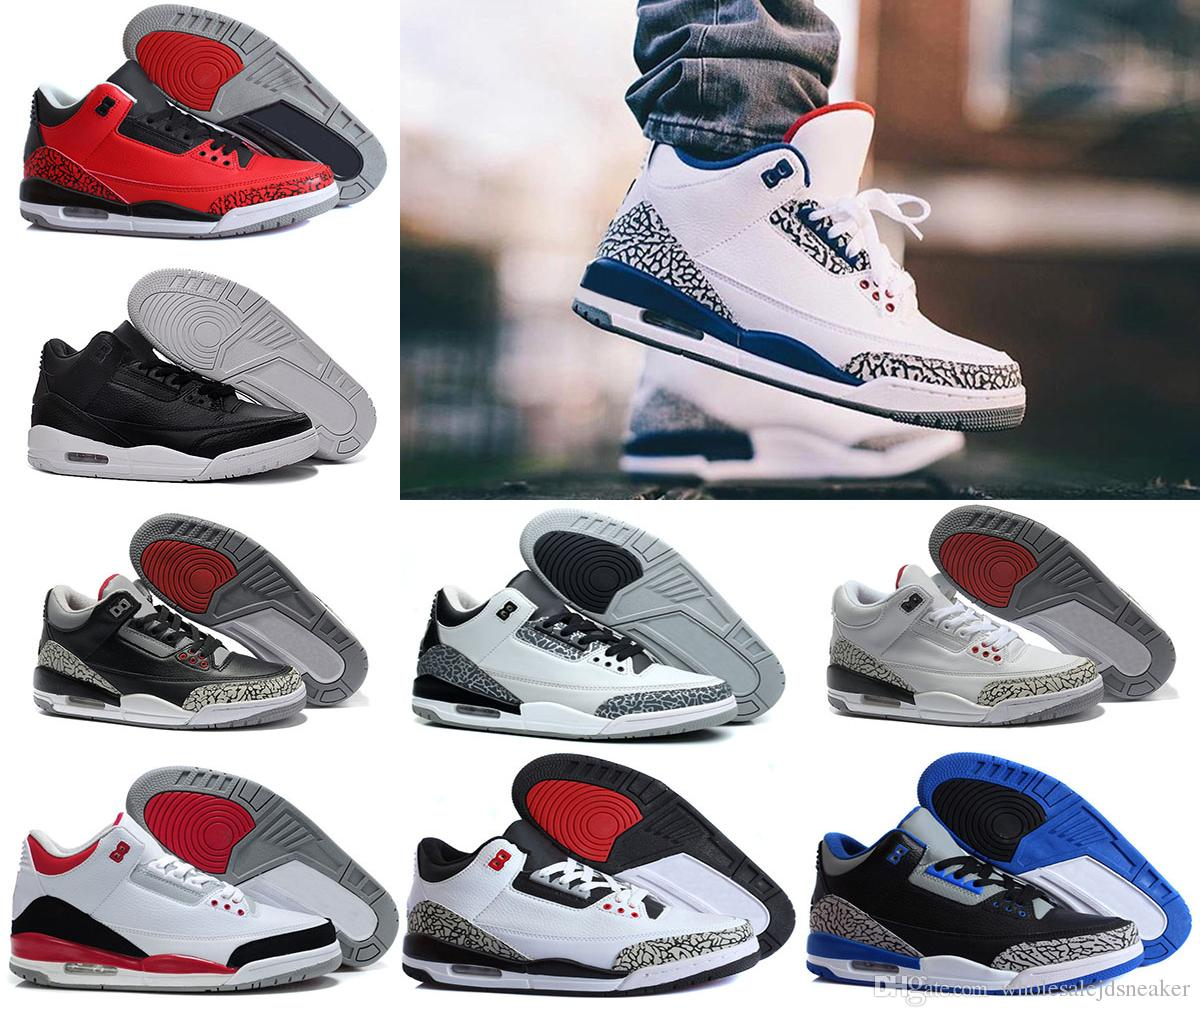 High Quality The New 2018 Basketball Shoes Sell Like Hot Cakes Color Cyber  Monday Black Orange Sport Blue Infrared 23 Size 7 13 Best Basketball Shoes  Womens ... 6286980848